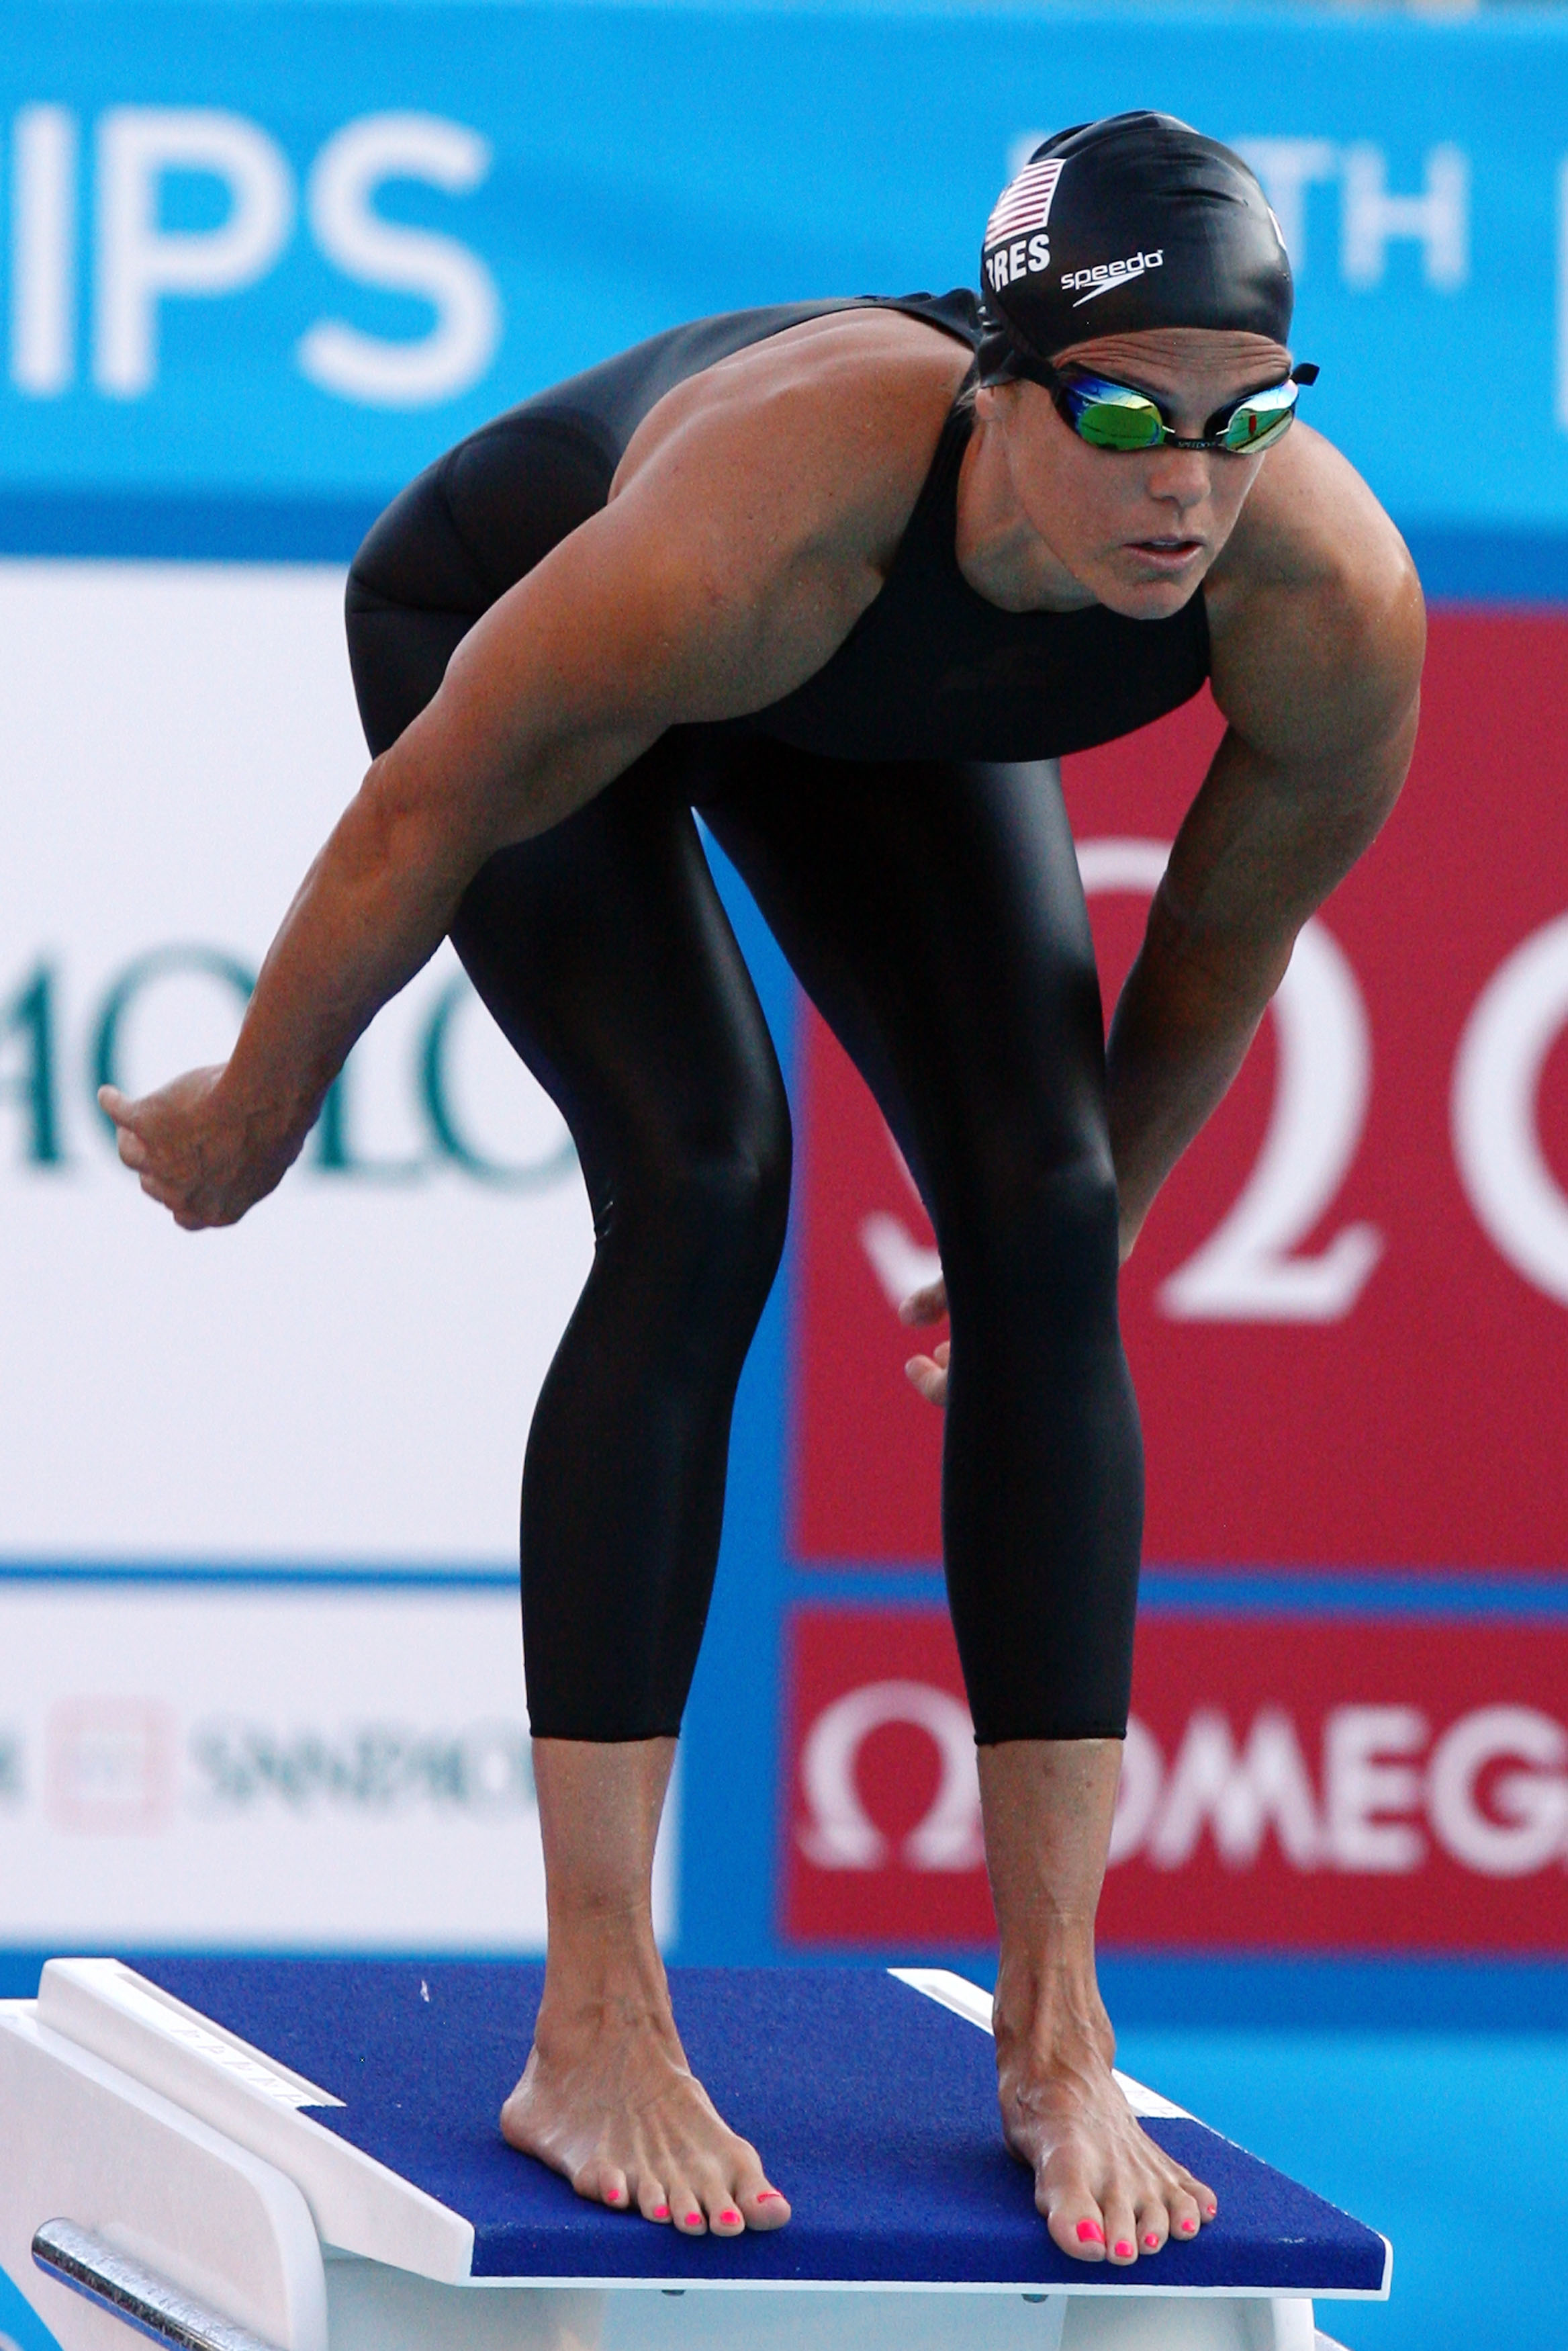 ROME - JULY 26:  Dara Torres of United States competes in the Women's 4x 100m Freestyle Final during the 13th FINA World Championships at the Stadio del Nuoto on July 26, 2009 in Rome, Italy.  (Photo by Al Bello/Getty Images)